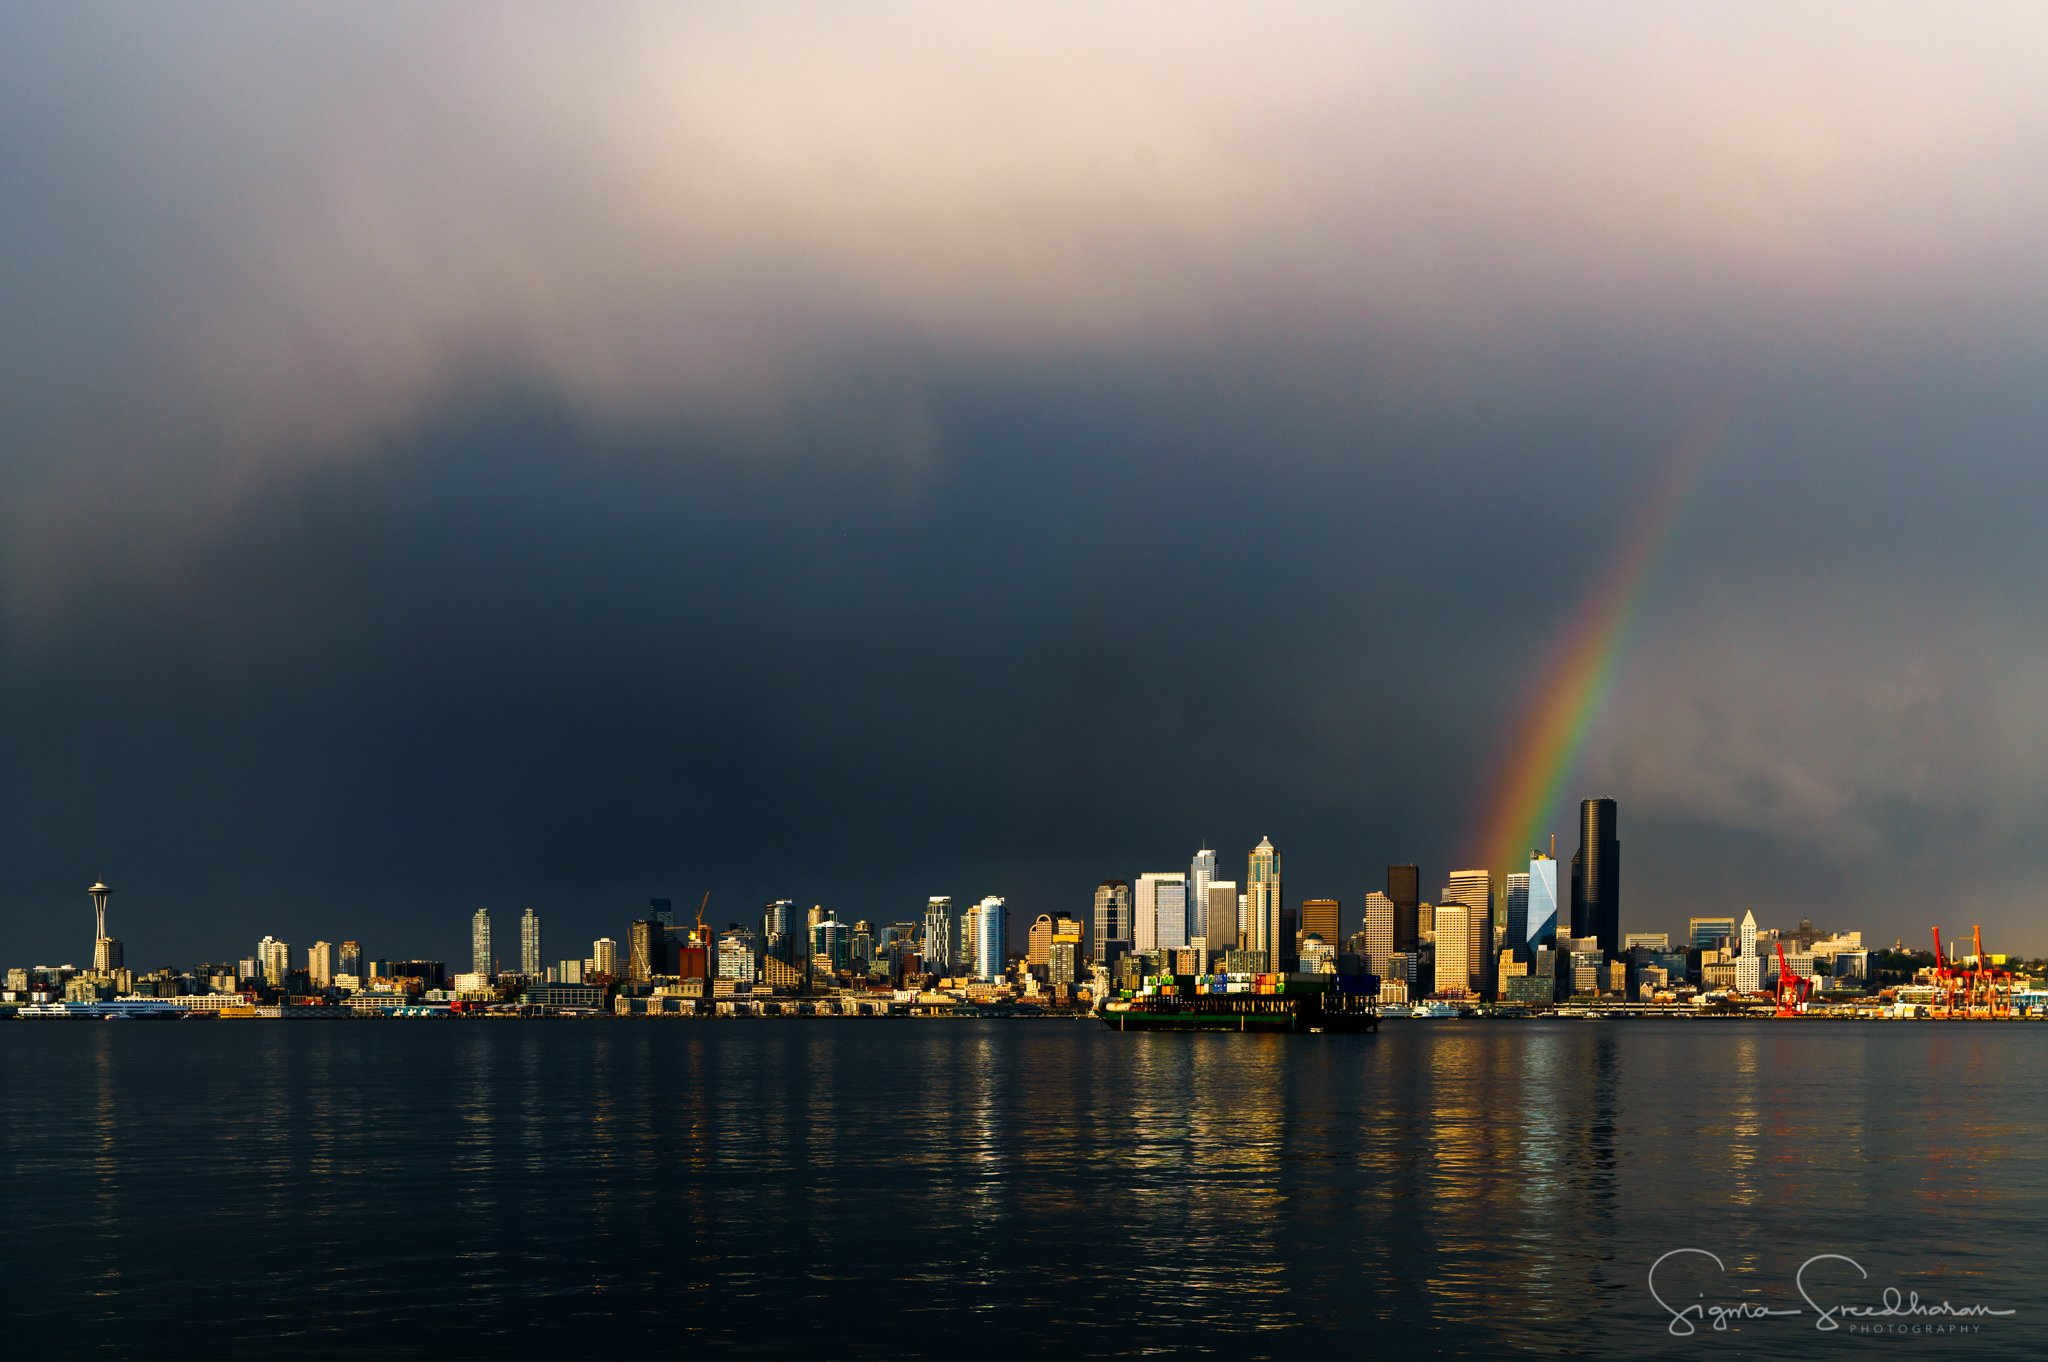 A rainbow brightens dark, stormy skies over downtown Seattle, Tuesday, April 18, 2017. (Photo: Sigma Sreedharan Photography)